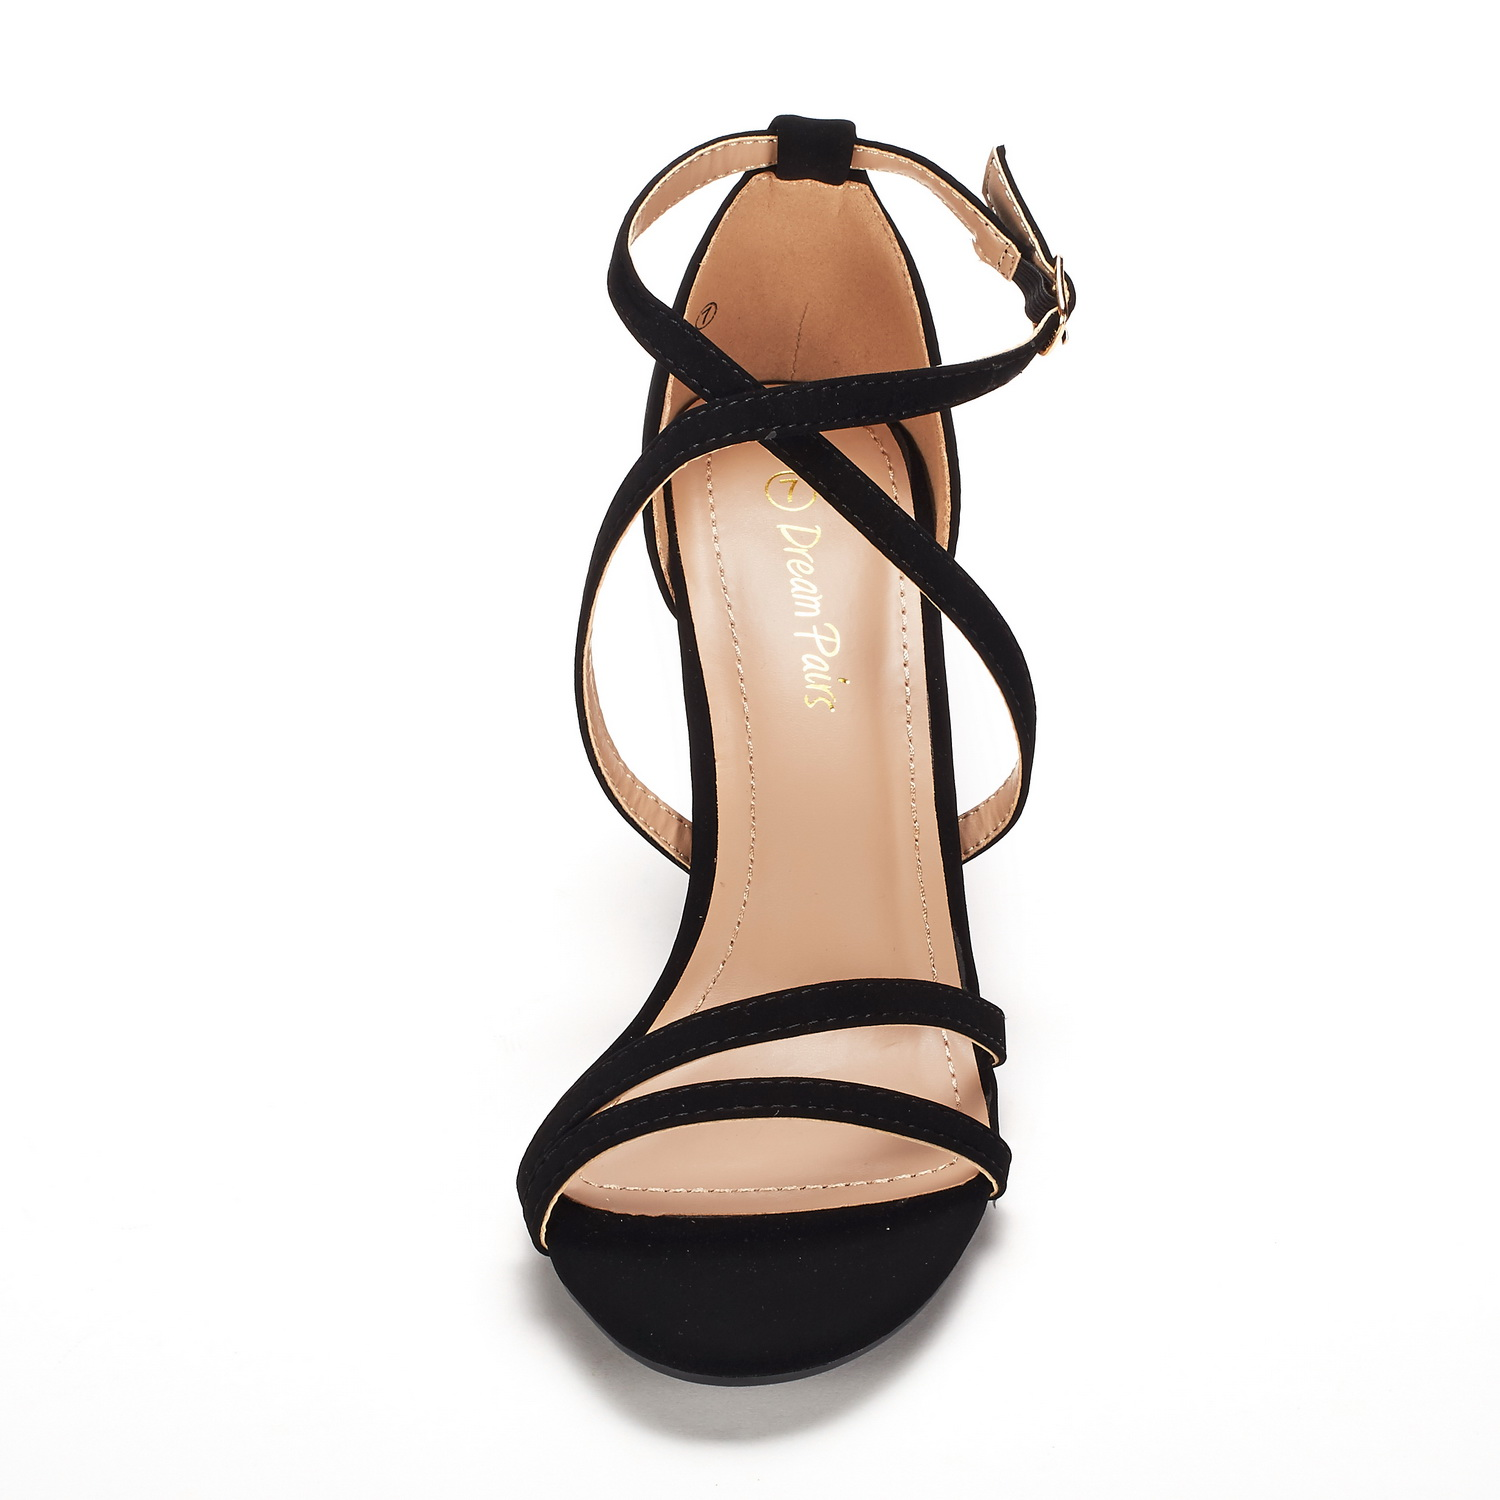 DREAM-PAIRS-Women-039-s-Ankle-Strap-High-Heel-Sandals-Dress-Shoes-Wedding-Party thumbnail 39